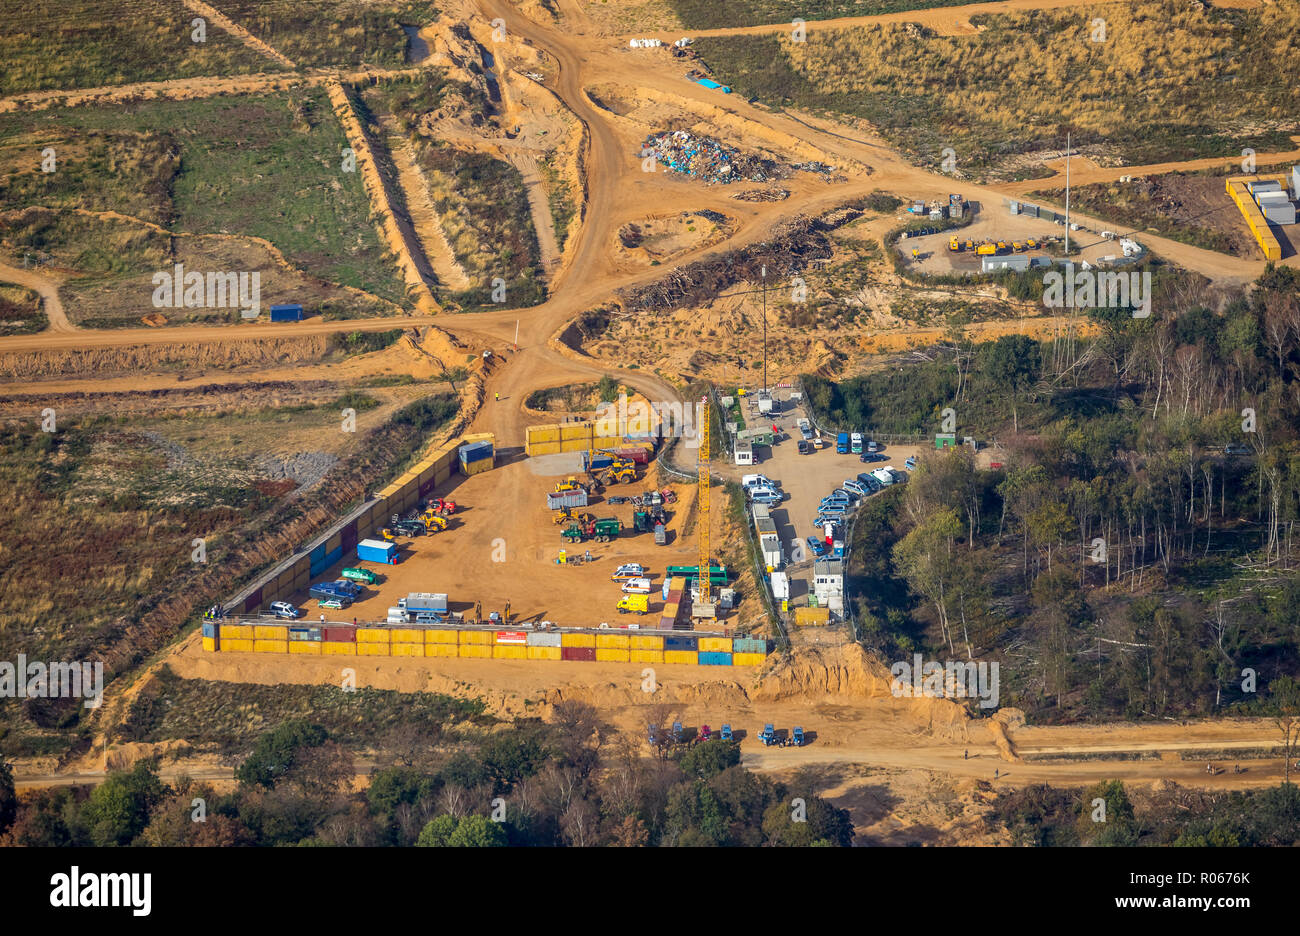 Aerial photograph, clearing companies, material warehouse of the large demonstration against the clearing of the Hambacher forest, Hambach, Hambacher  - Stock Image